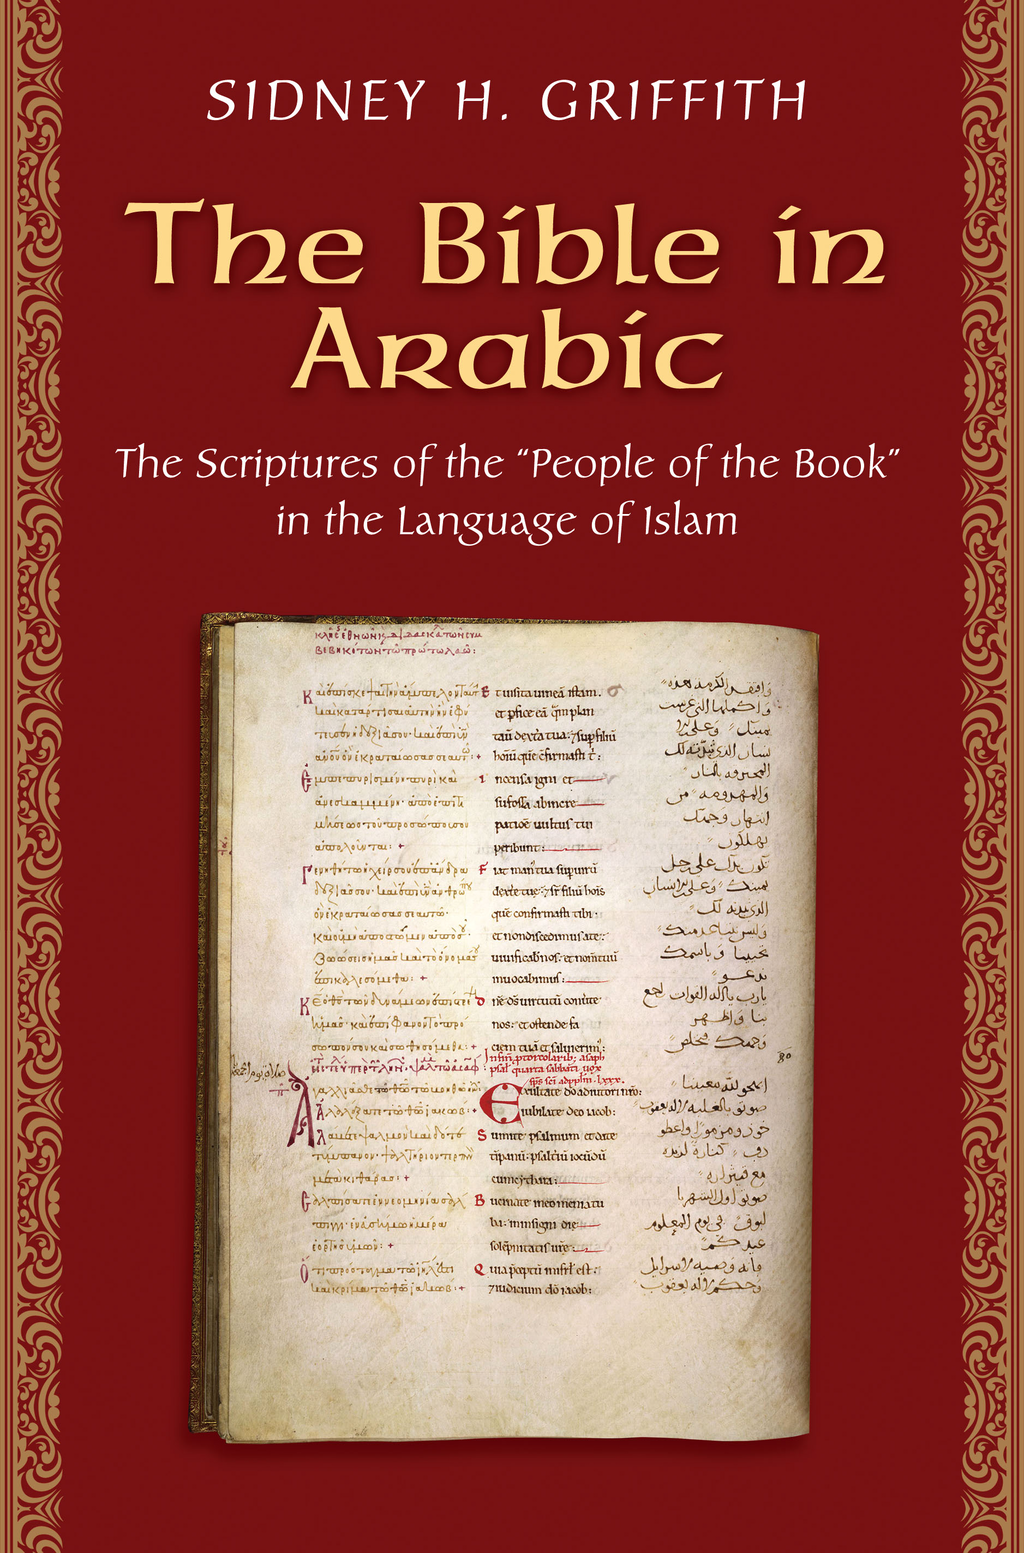 The Bible in Arabic The Scriptures of the 'People of the Book' in the Language of Islam